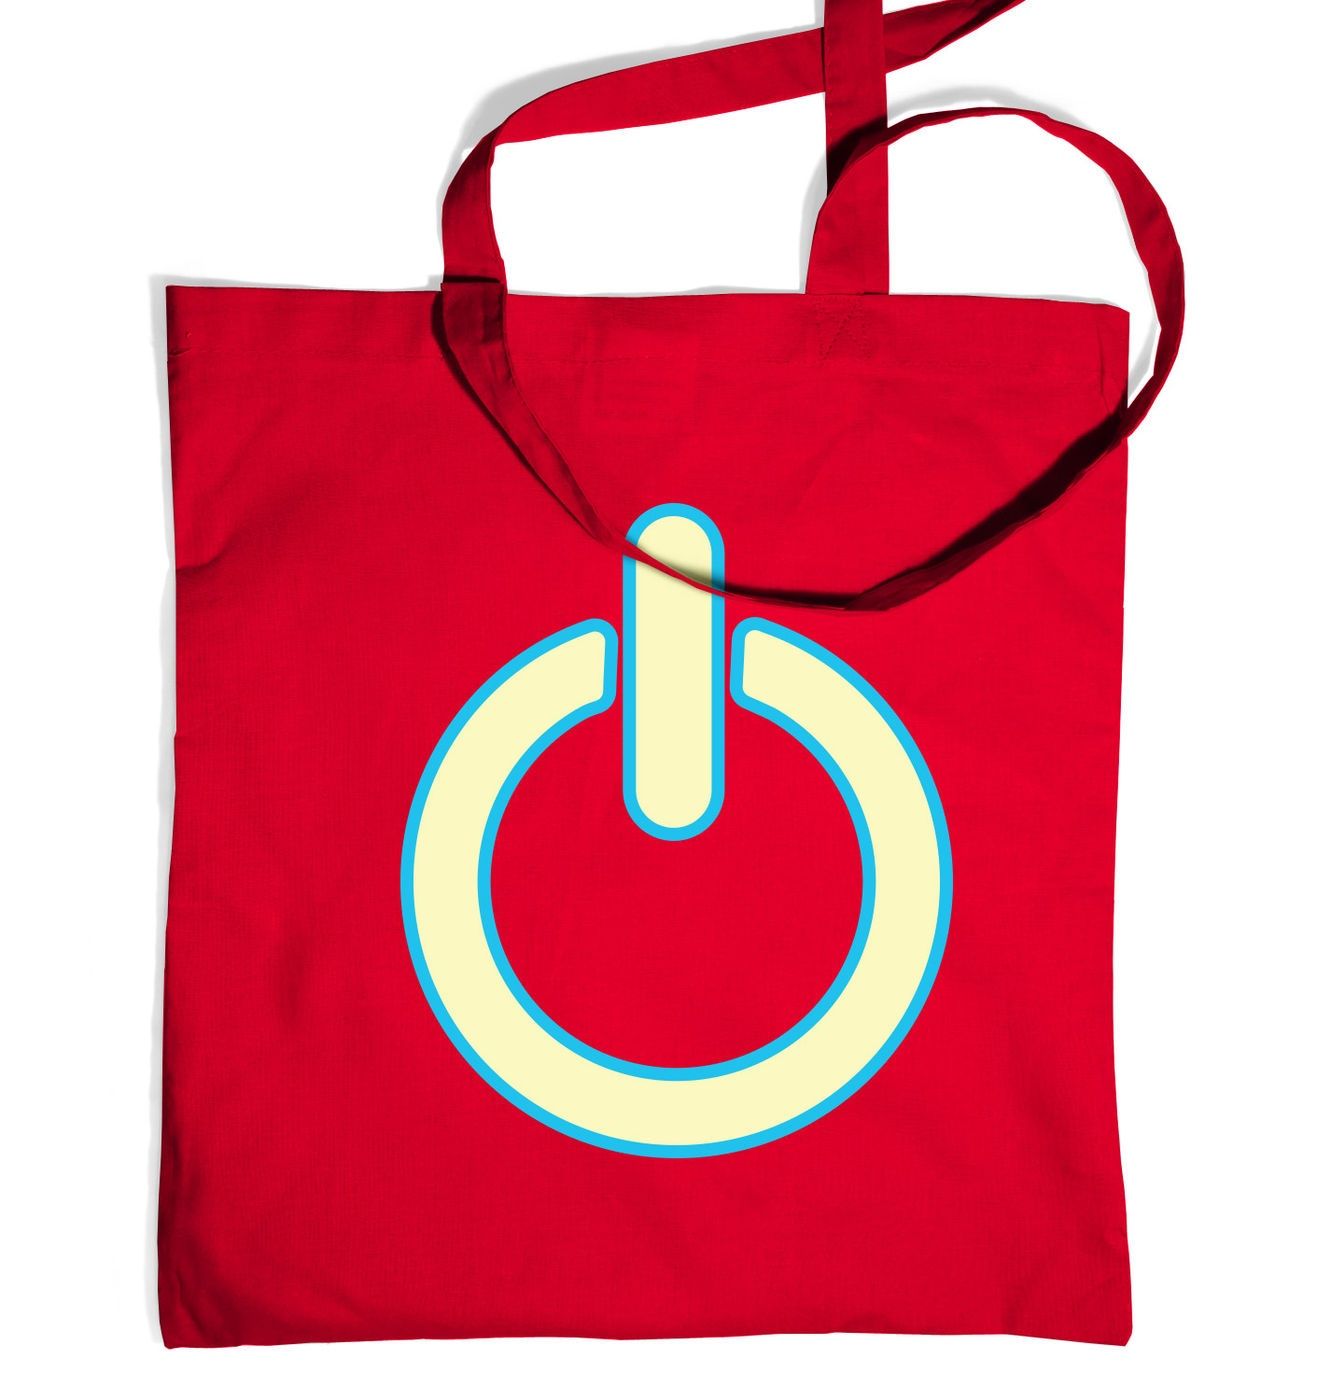 Glow In The Dark Power Symbol tote bag